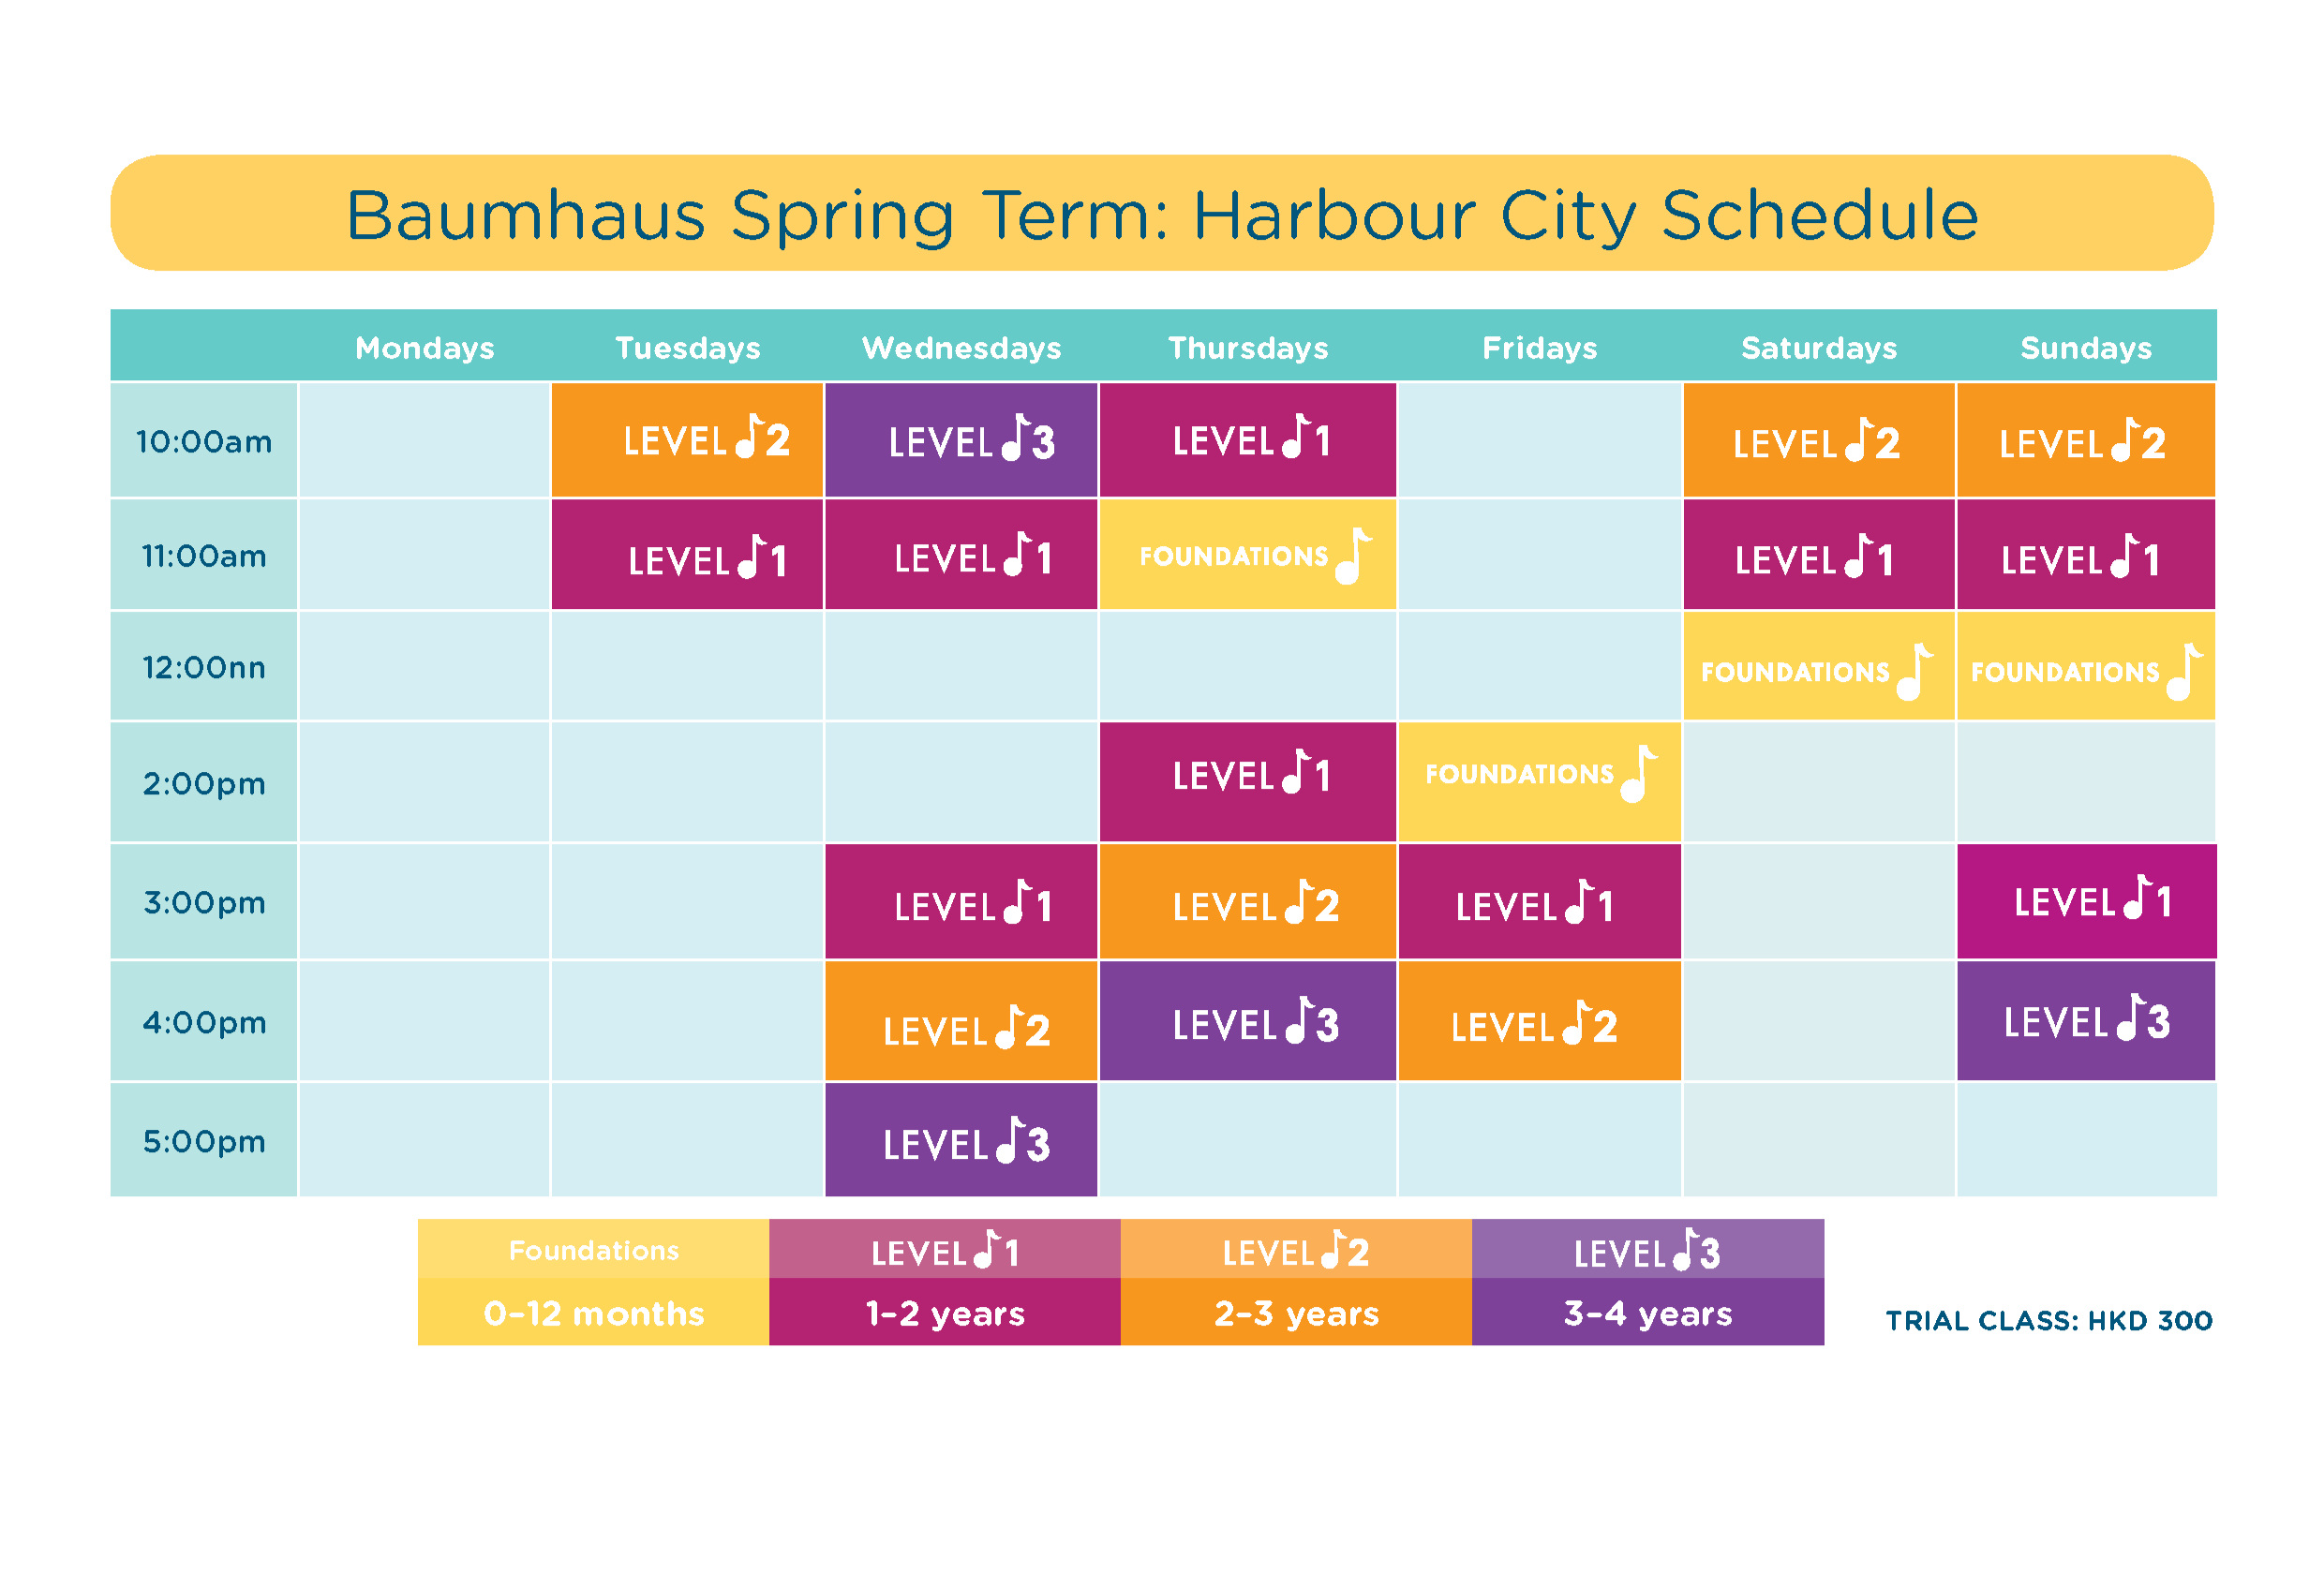 BH+sched+spring+harbour+20190515+FA+web%5B52741%5D.jpg